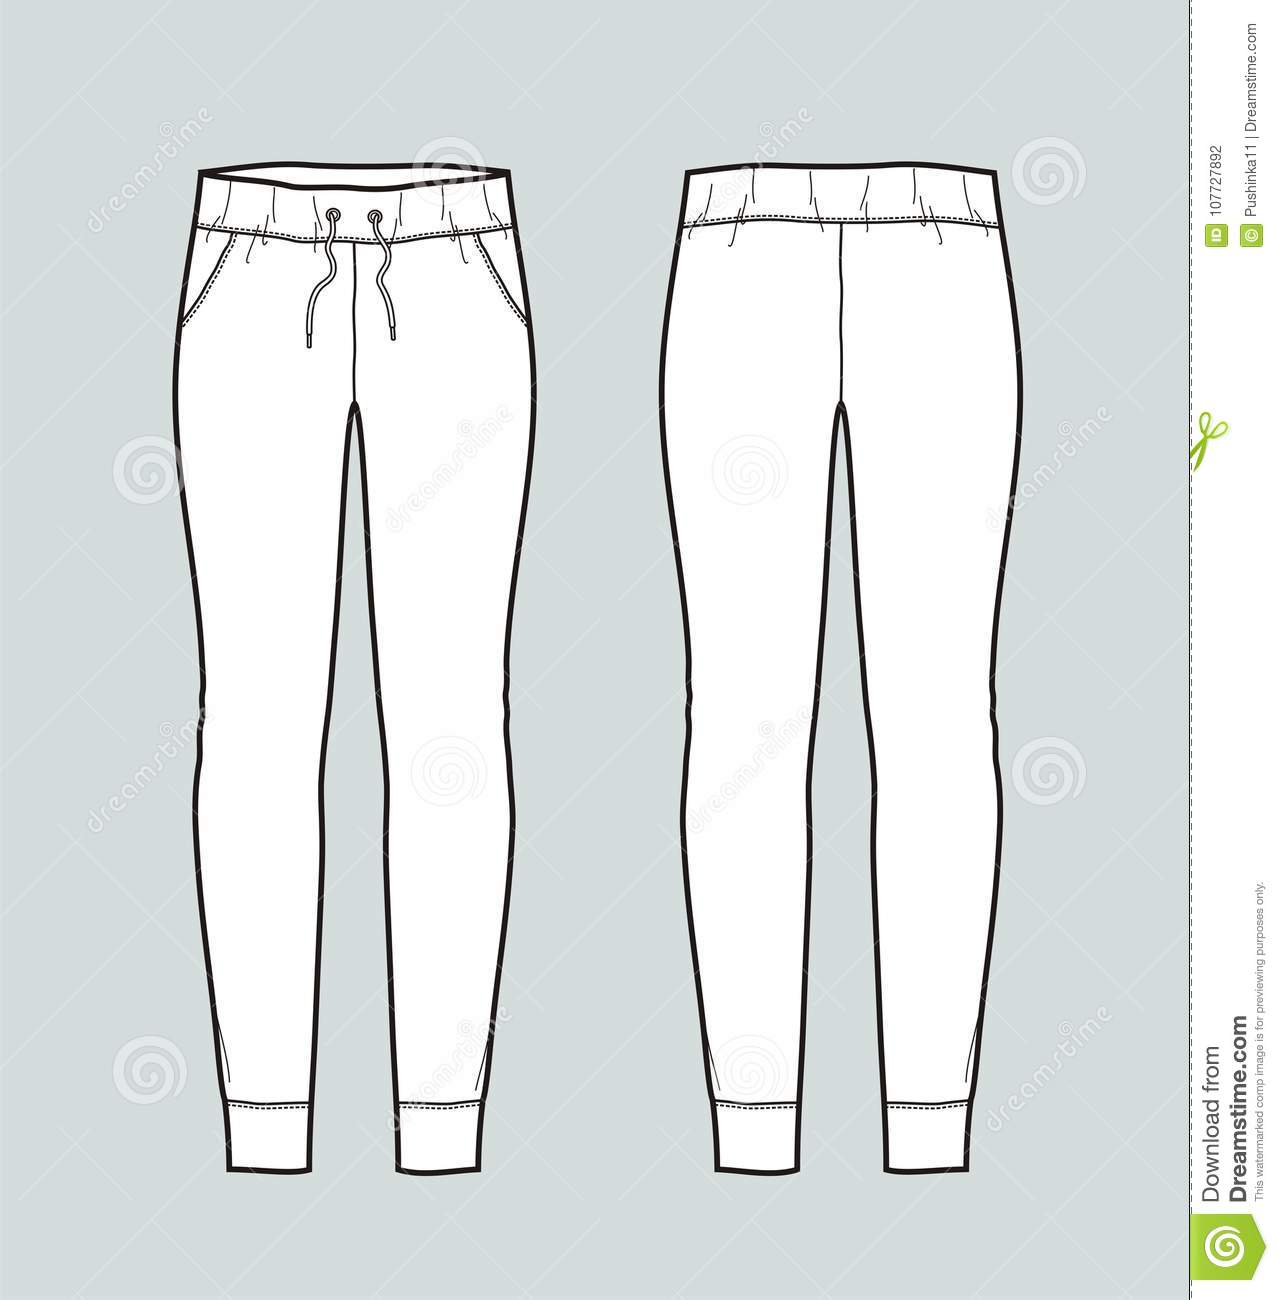 a0d32d3ddf0588 Pants stock vector. Illustration of jogger, lady, drawing - 107727892